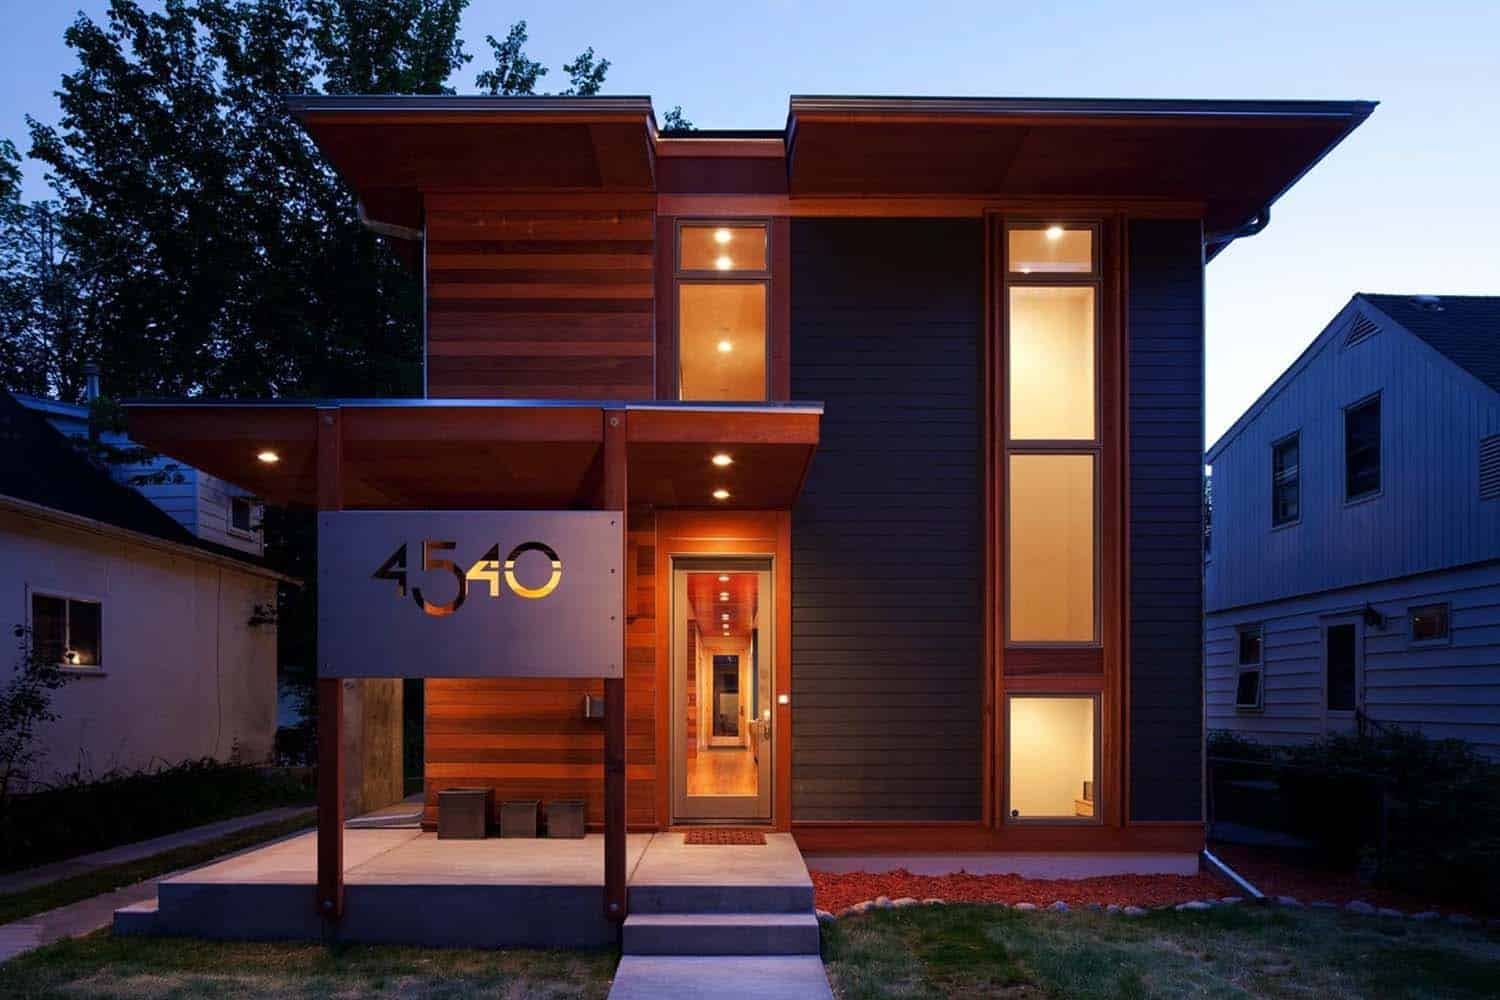 Modern Sustainable Home-LEED-SALA Architects-16-1 Kindesign